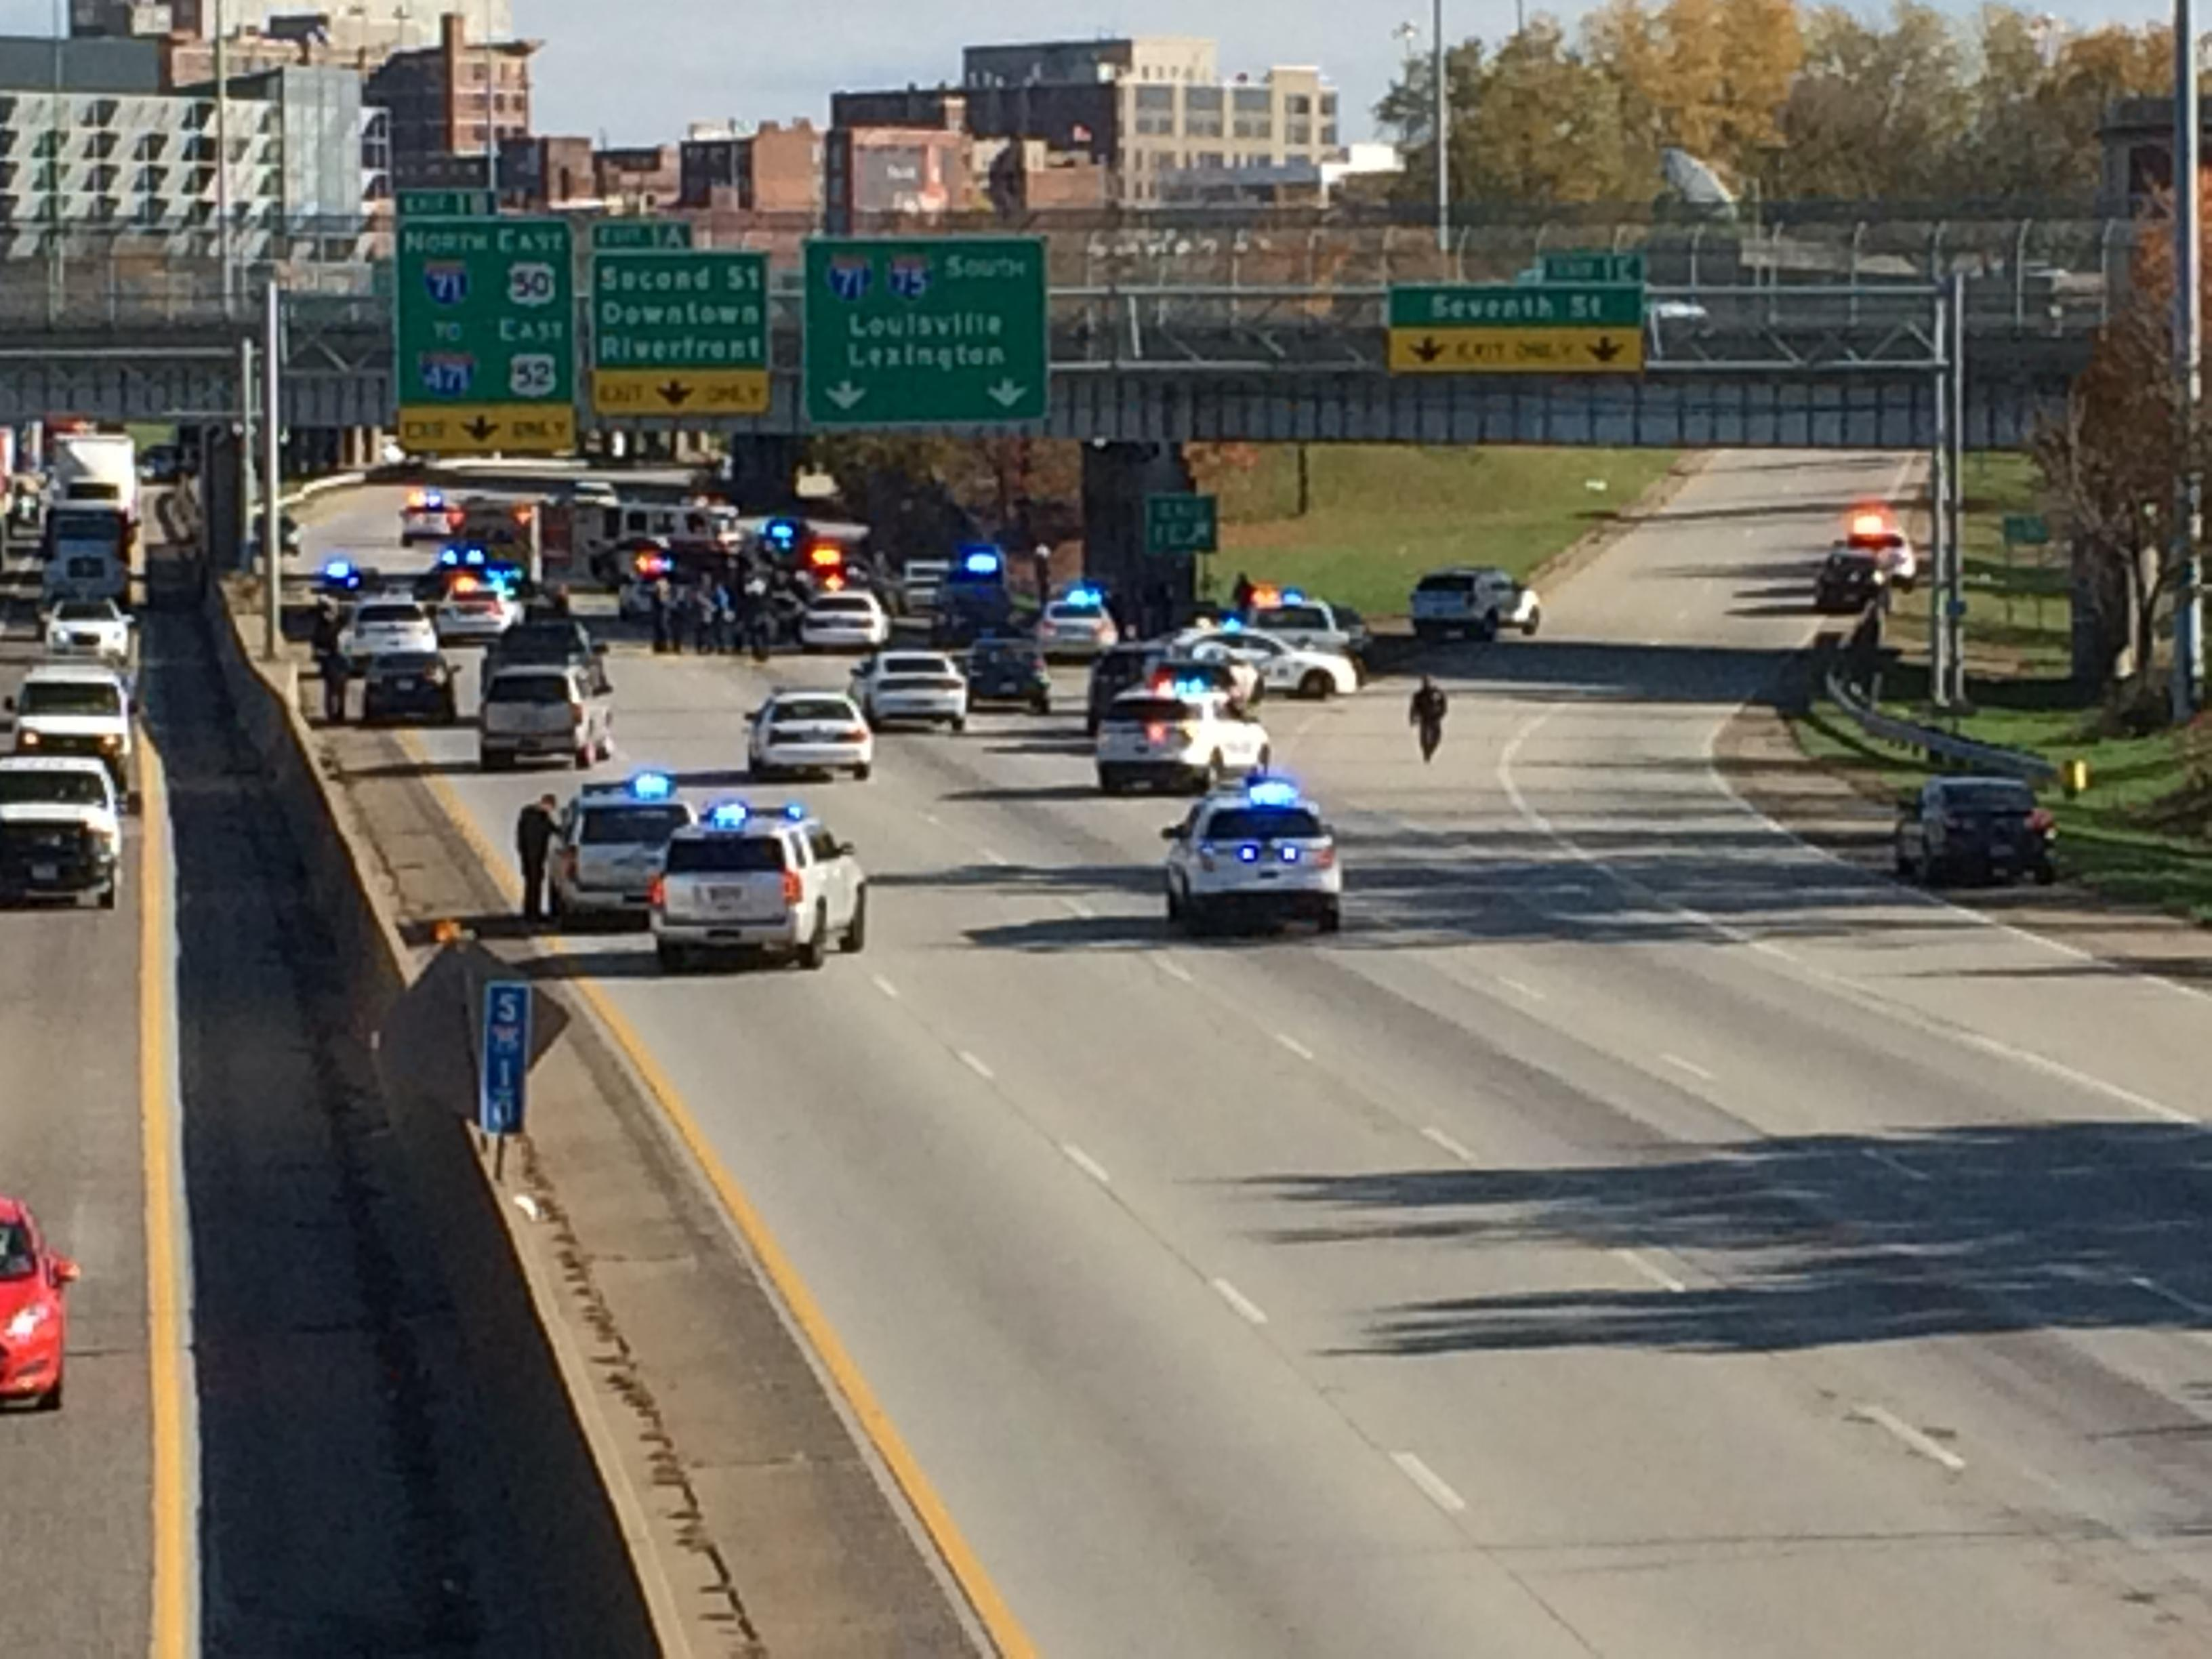 Police chase of Ronald Foster ends with a crash that shut down I-75 southbound (WKRC)